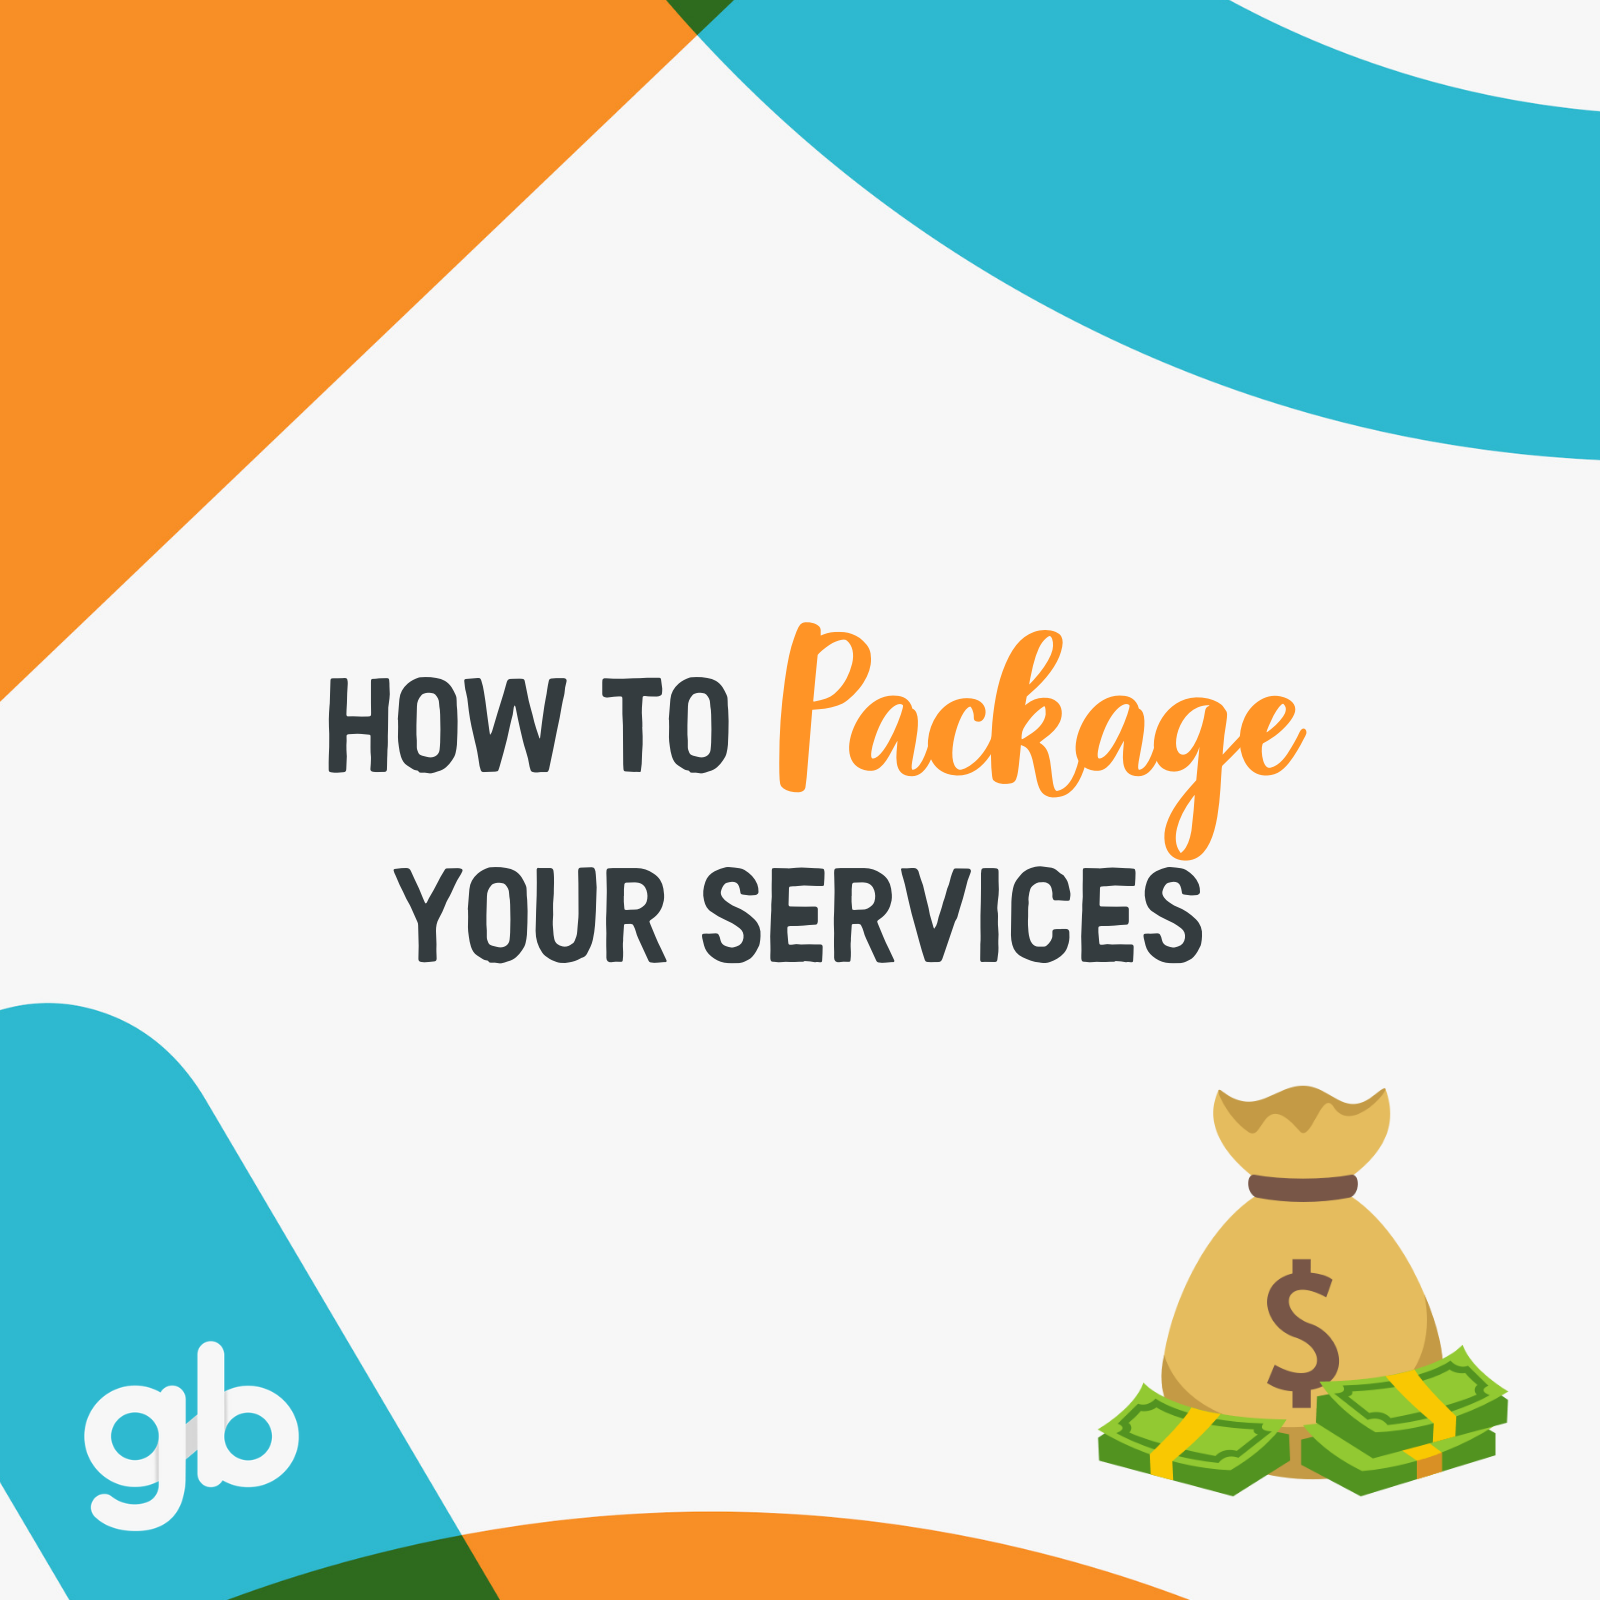 #6. Wondering why it's a good idea to package your services? In this article, we share advice & best practices on how to package and price your services in a way that makes you and your clients happy! 😃 -